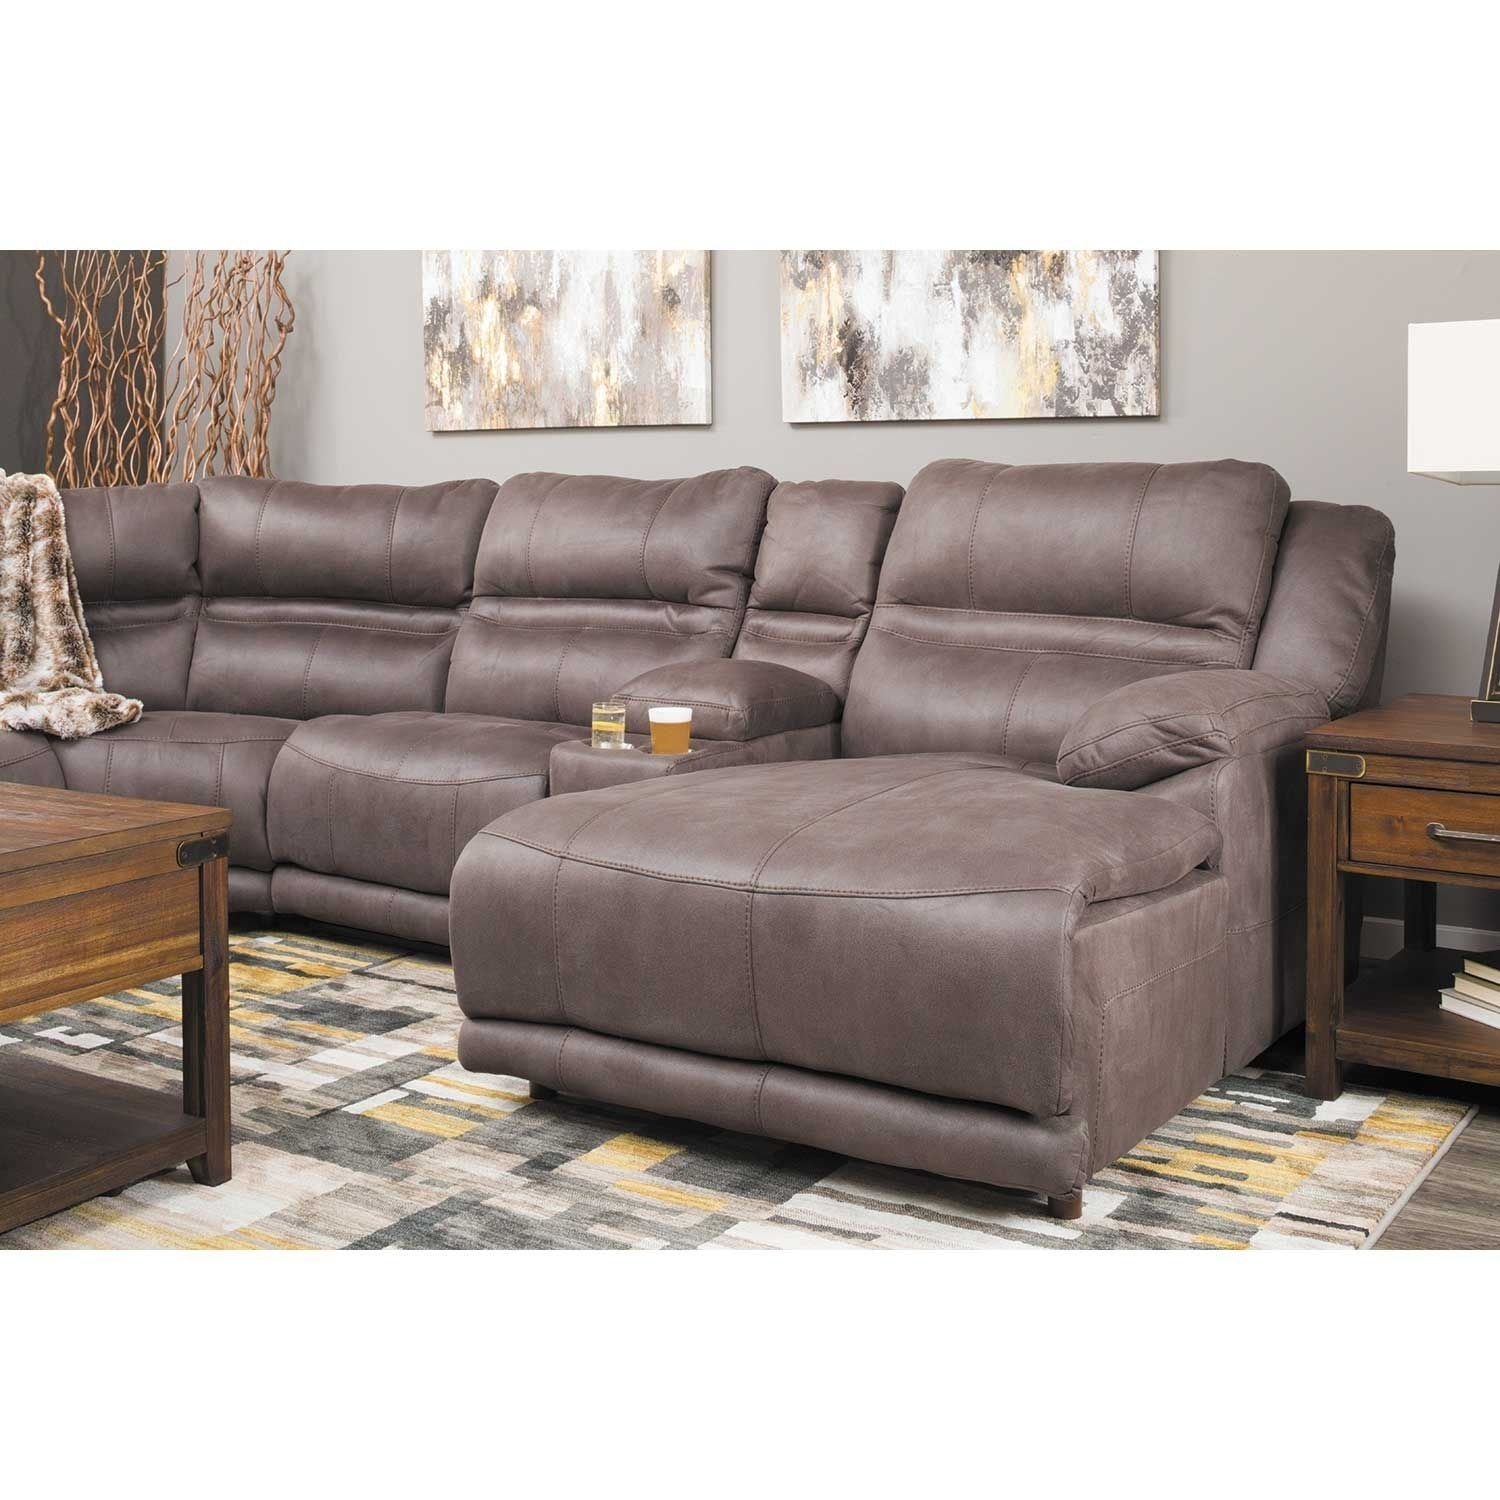 Braxton 6 Piece Power Reclining Sectional With Adjustable Headrest In Jackson 6 Piece Power Reclining Sectionals (View 10 of 25)